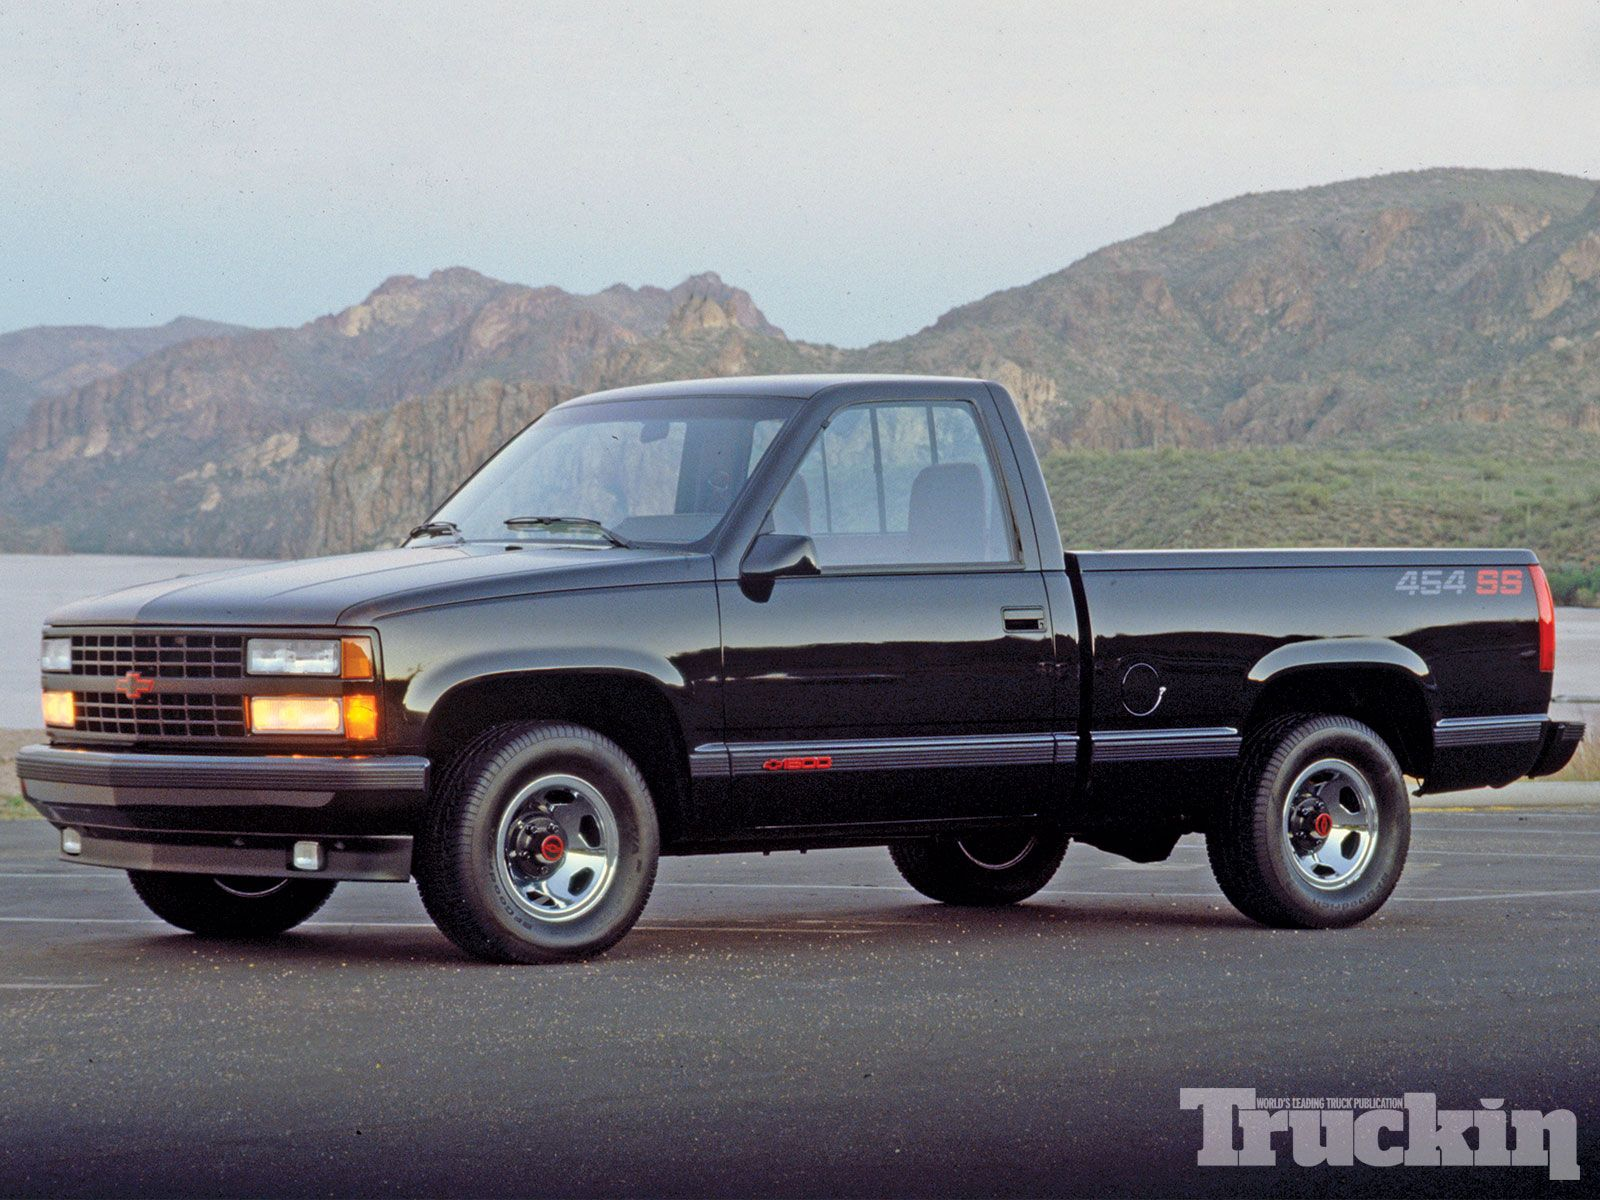 25 best 1994 chevy silverado ideas on pinterest z71 truck chevy silverado z71 and silverado z71